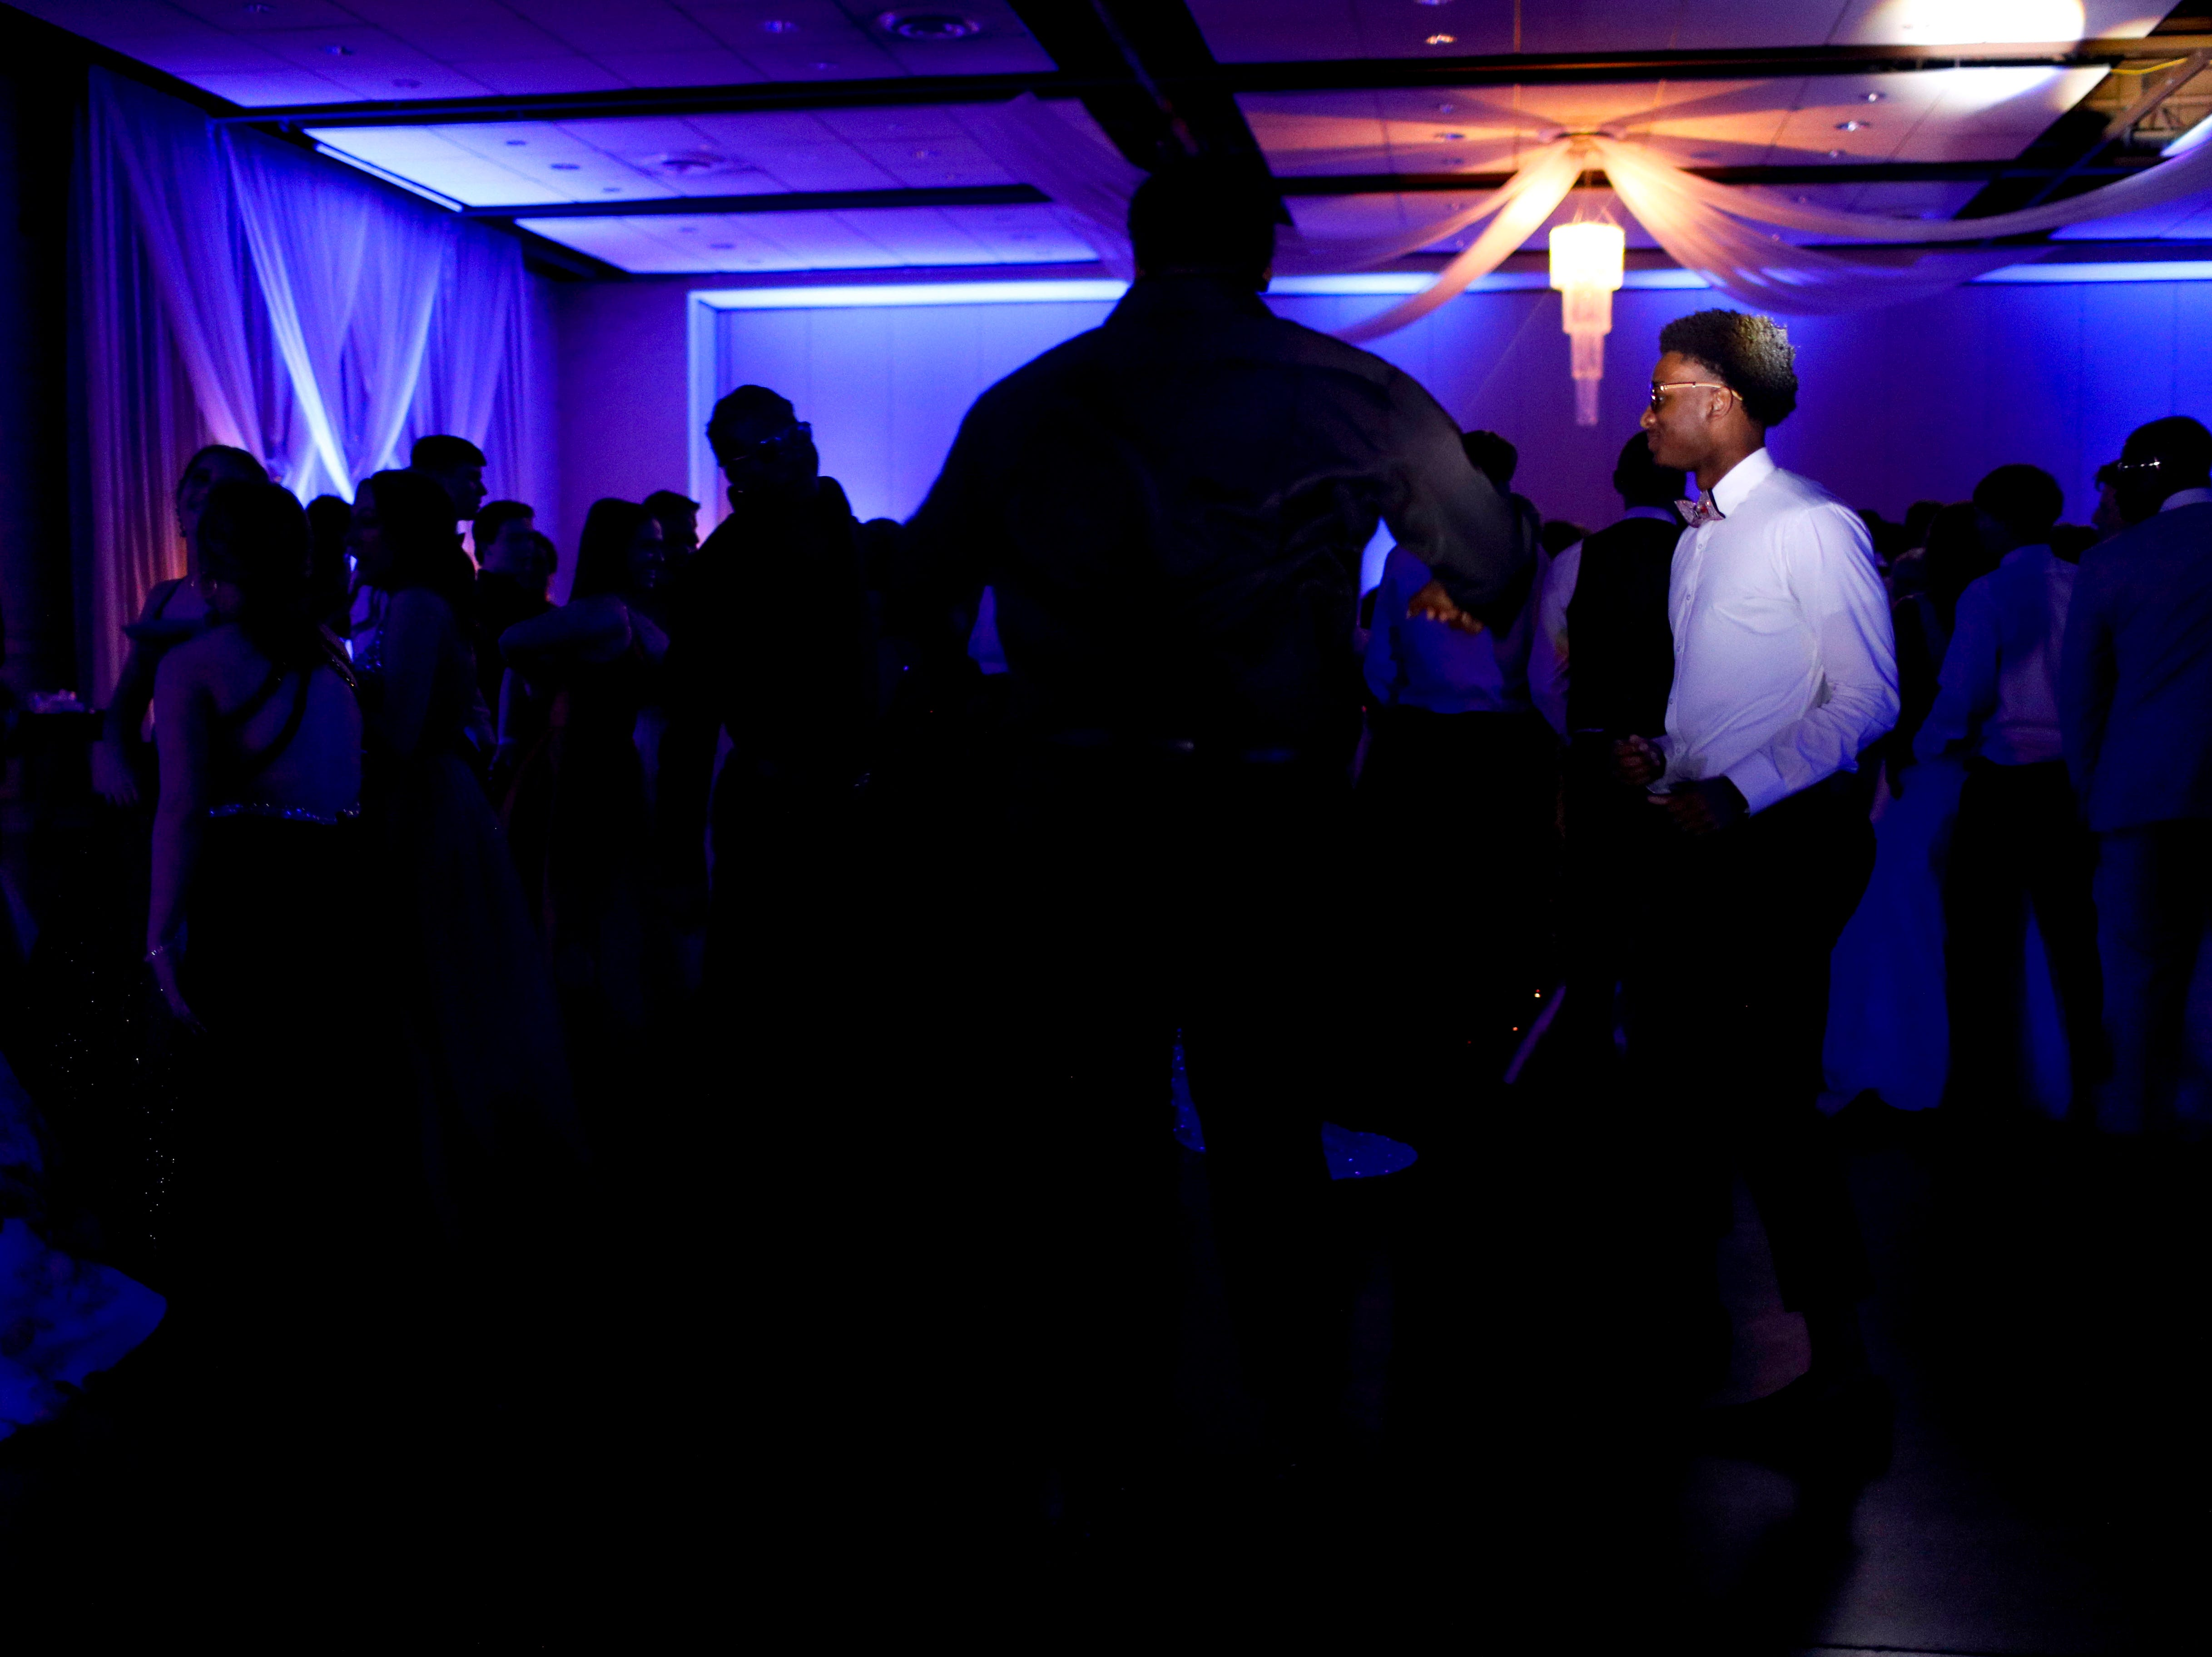 Students take to the dance floor during Clarksville Academy's 2019 prom at The Bruce Convention Center in Hopkinsville, Ky., on Saturday, April 6, 2019.